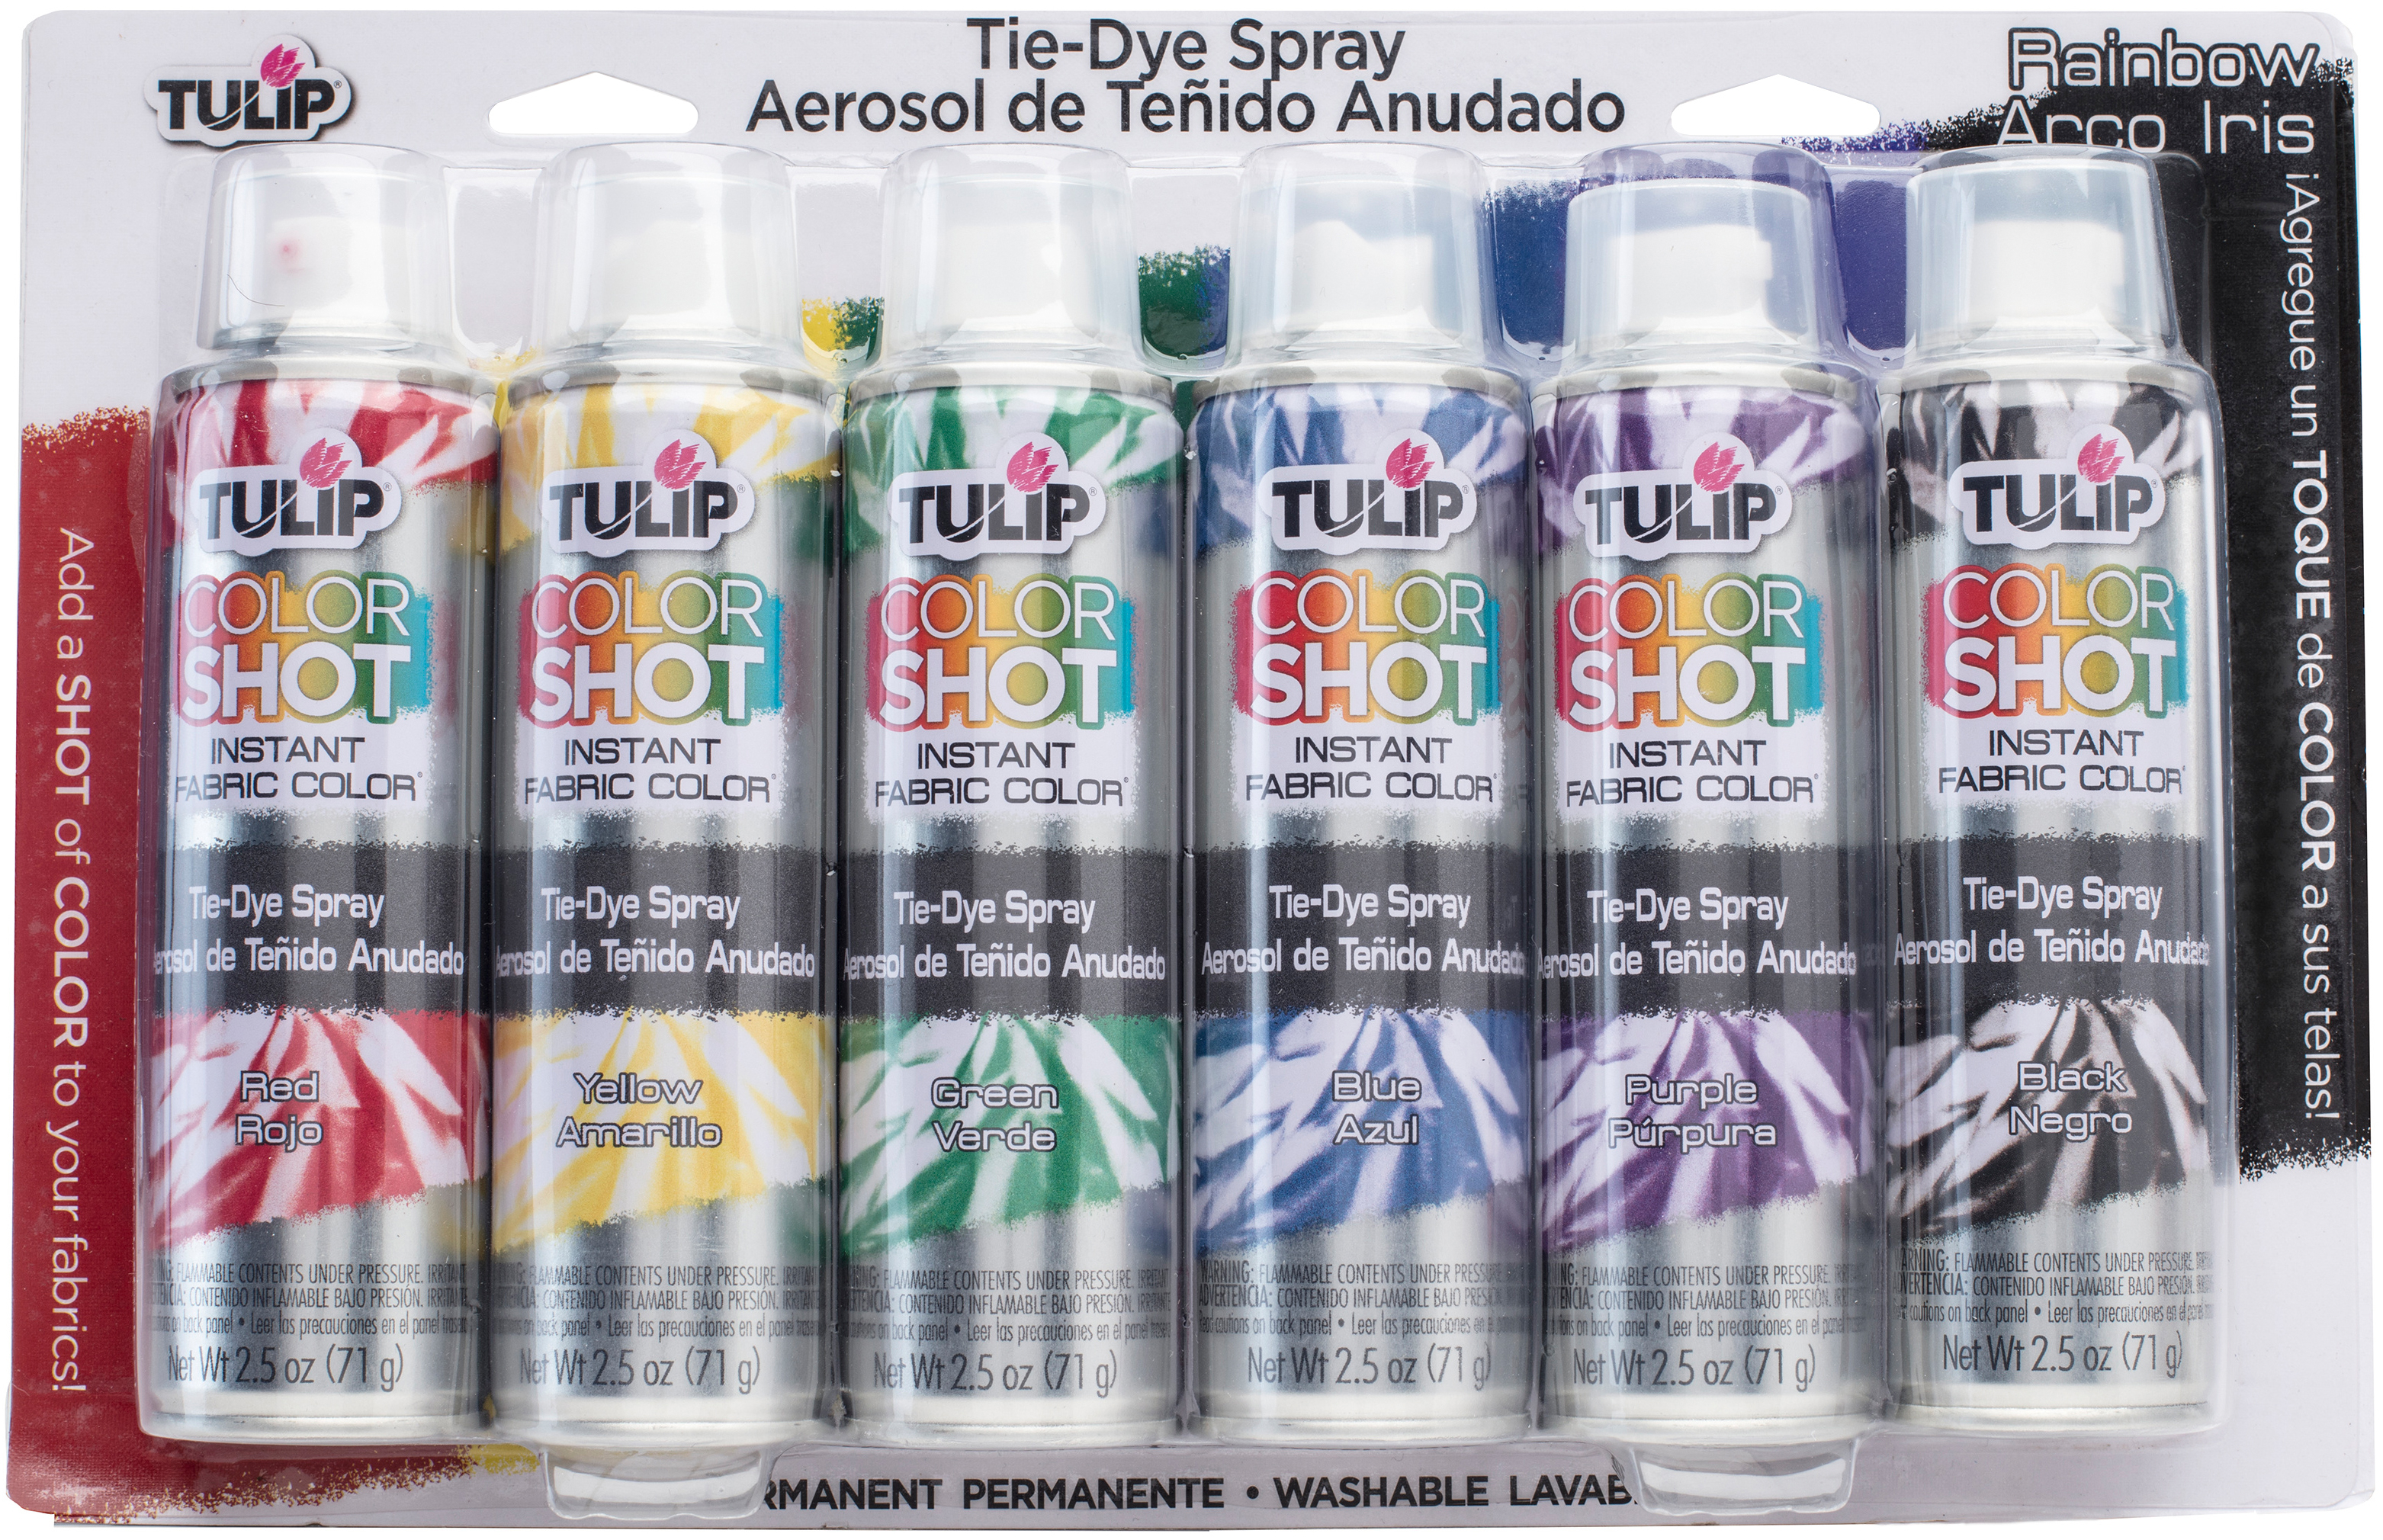 Tulip ColorShot Instant Fabric Color Spray Tie-Dye Kit-Rainbow